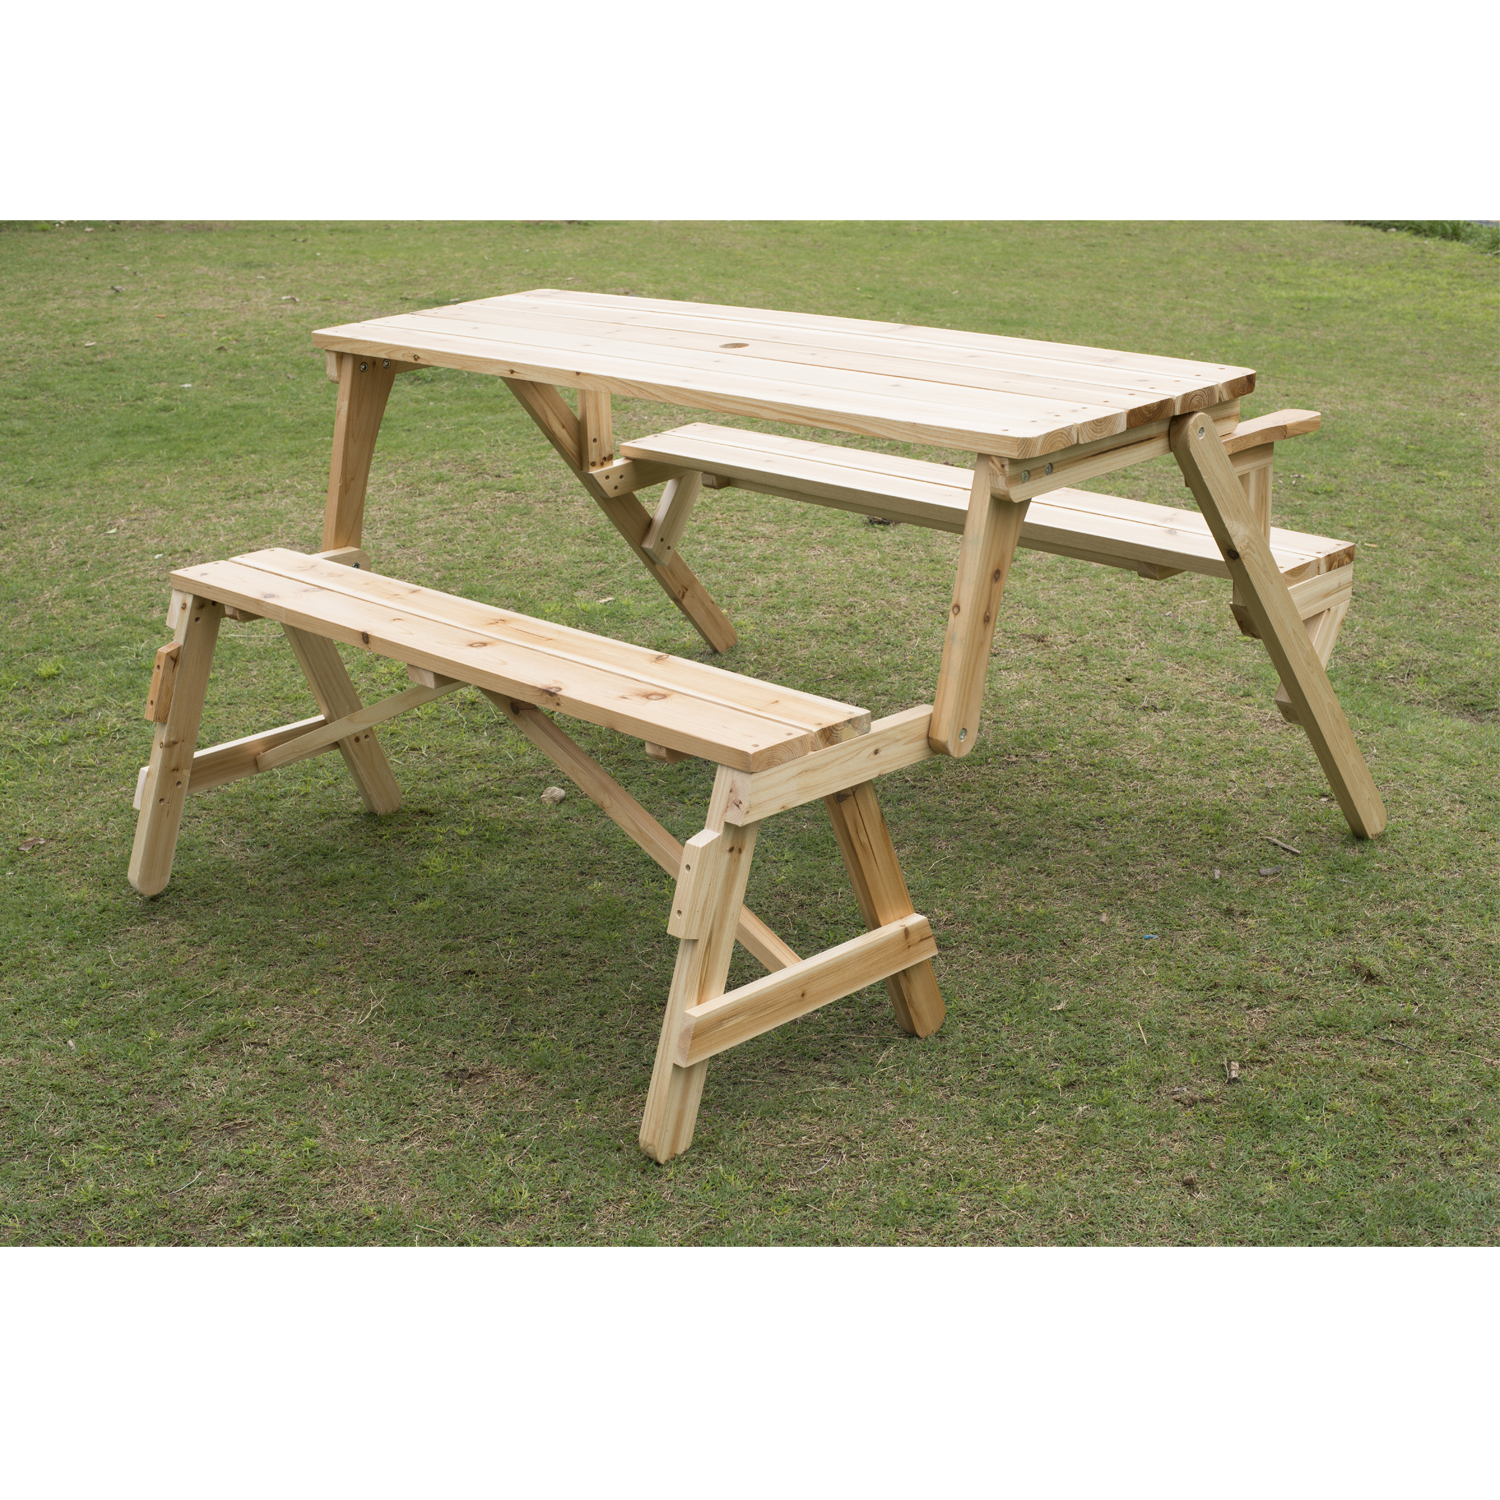 Picnic Table clipart lawn chairs Walmart Table Outsunny Bench 2